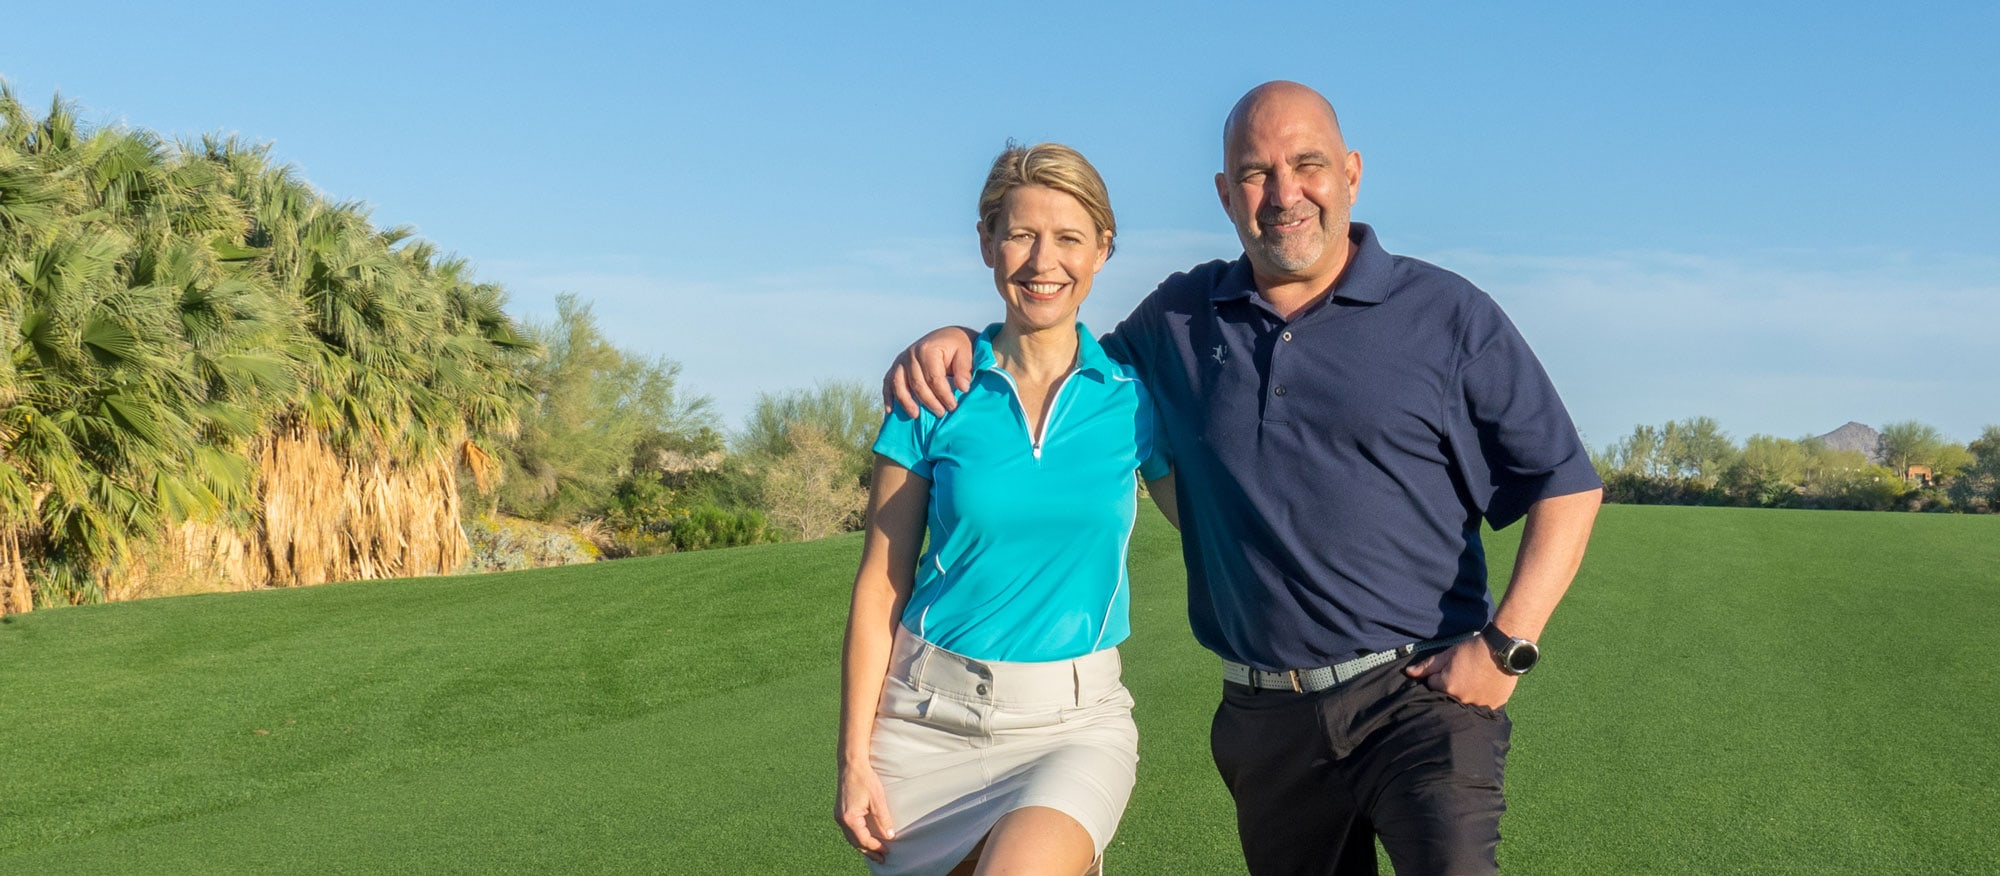 PLACES TO LOVE - Greater Palm Springs - Samantha Brown